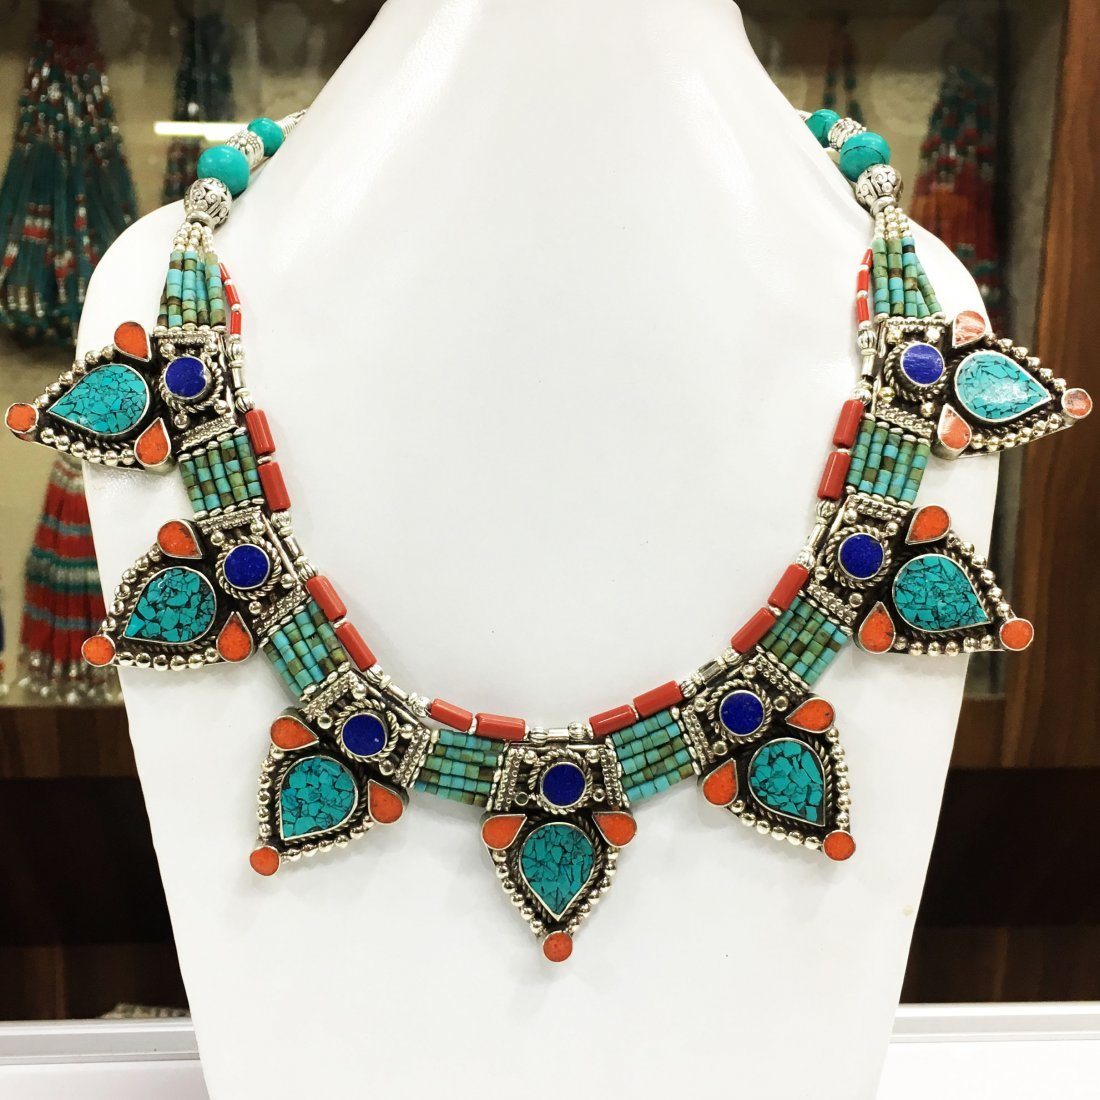 Turquoise & Coral Vintage Tibetan Necklace